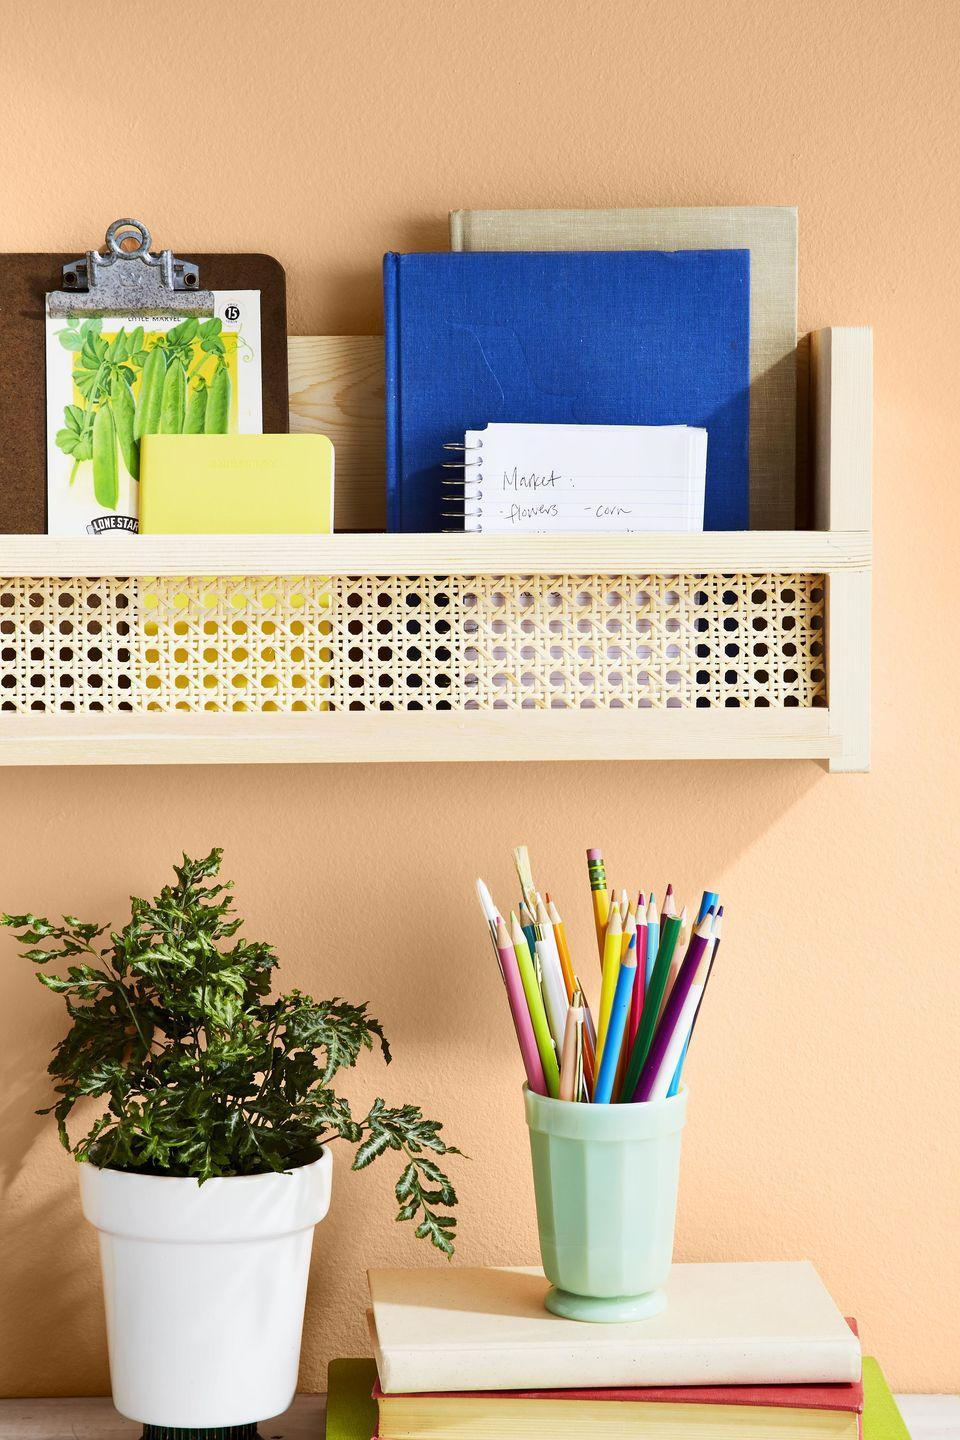 """<p>That blank wall in your home office is about to get a lot cuter with the addition of a bookshelf that been adorned with cane webbing.</p><p><strong>To make:</strong> Trim a piece of caning just larger than the opening on<br>the shelf (<a href=""""https://www.amazon.com/brightmaison-Wooden-Shelves-Molding-Material/dp/B072W8XNL1/ref=sr_1_8"""" rel=""""nofollow noopener"""" target=""""_blank"""" data-ylk=""""slk:Brightmaison's floating bookshelf; amazon.com"""" class=""""link rapid-noclick-resp"""">Brightmaison's floating bookshelf;<em> amazon.com</em></a>). Use a foam brush to spread glue (we used Aleene's Original Tacky Glue) to the back of the shelf opening. Attach caning, holding it in place<br>with binder clips while it dries. Once dry, remove clips and hang shelf.<br></p>"""